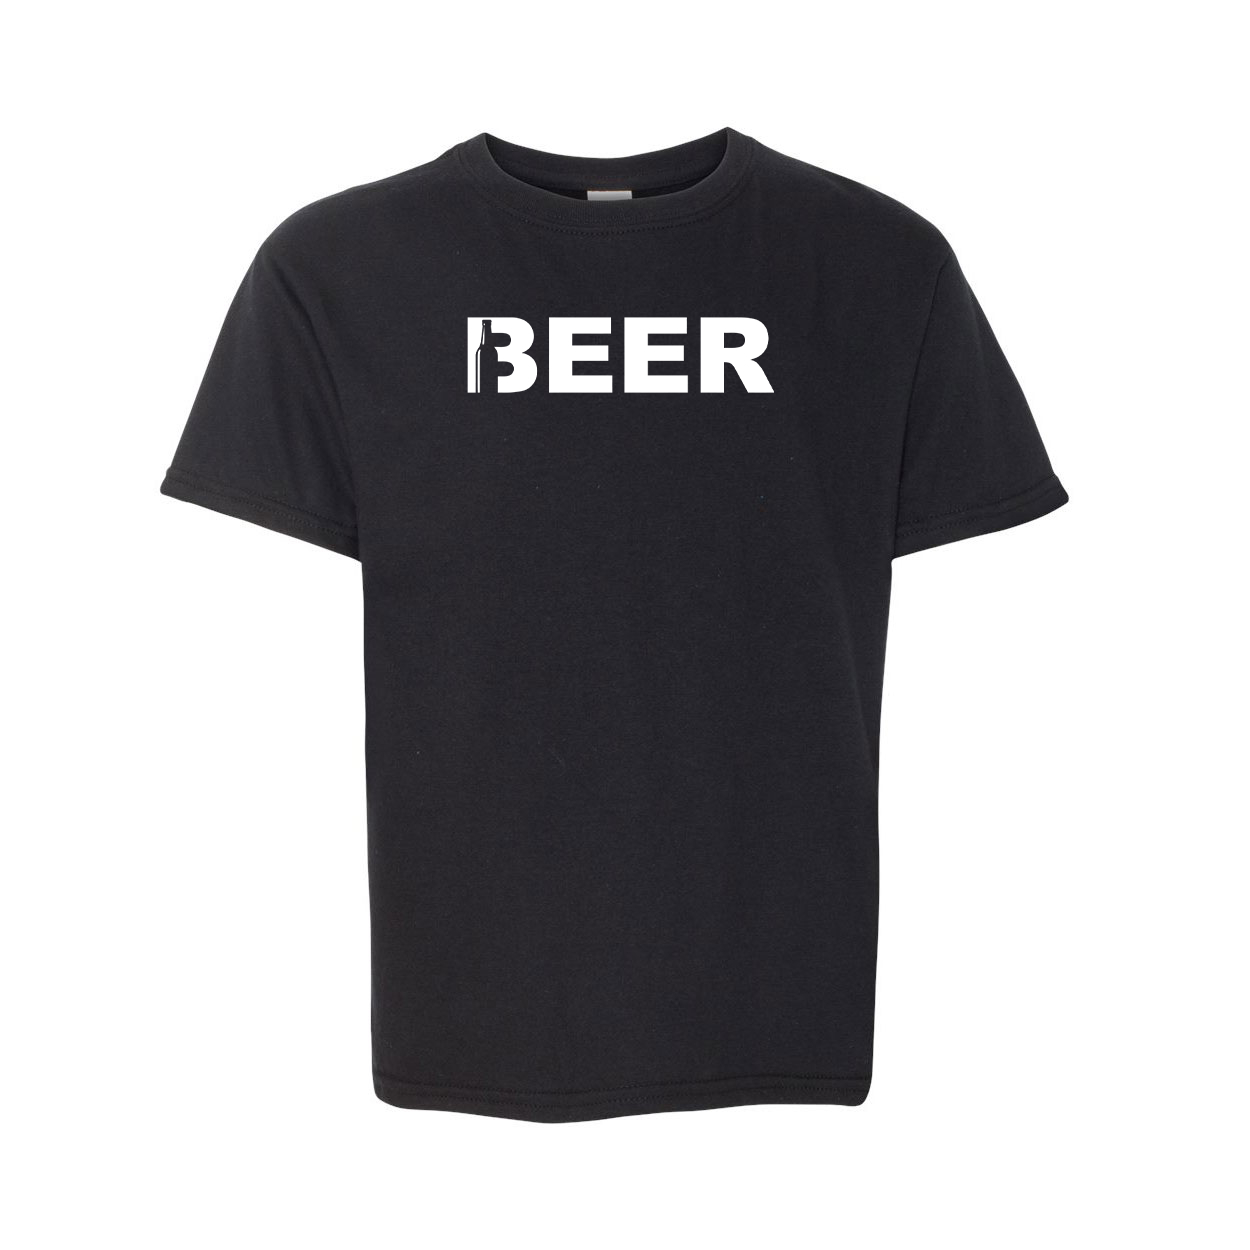 Beer Bottle Logo Classic Youth T-Shirt Black (White Logo)